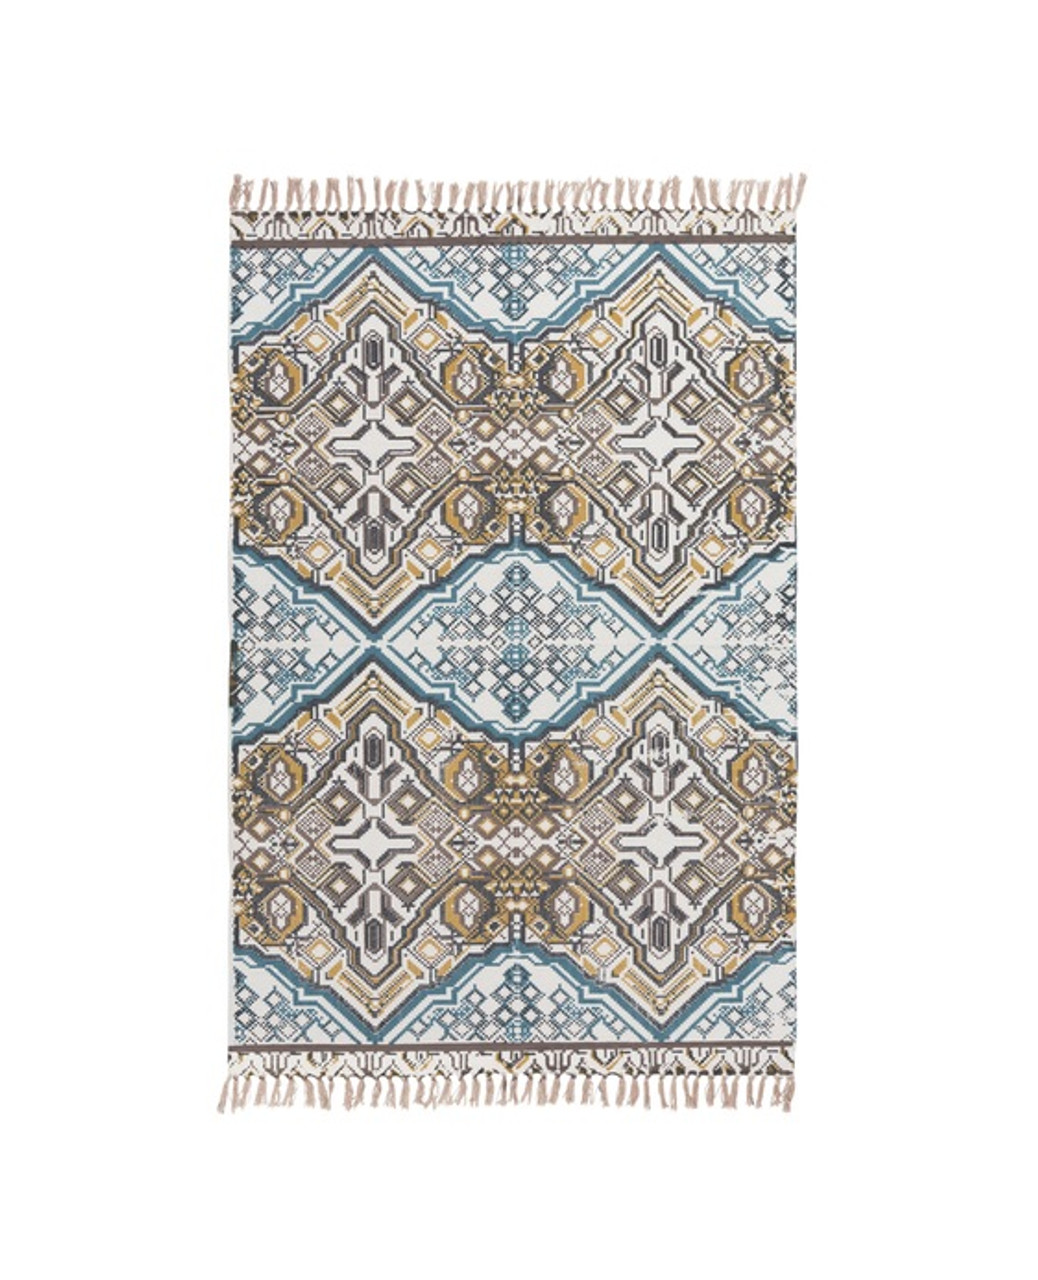 Christmas Area Rugs 8 X 10.8 X 10 Infinite Illusion Multi Color Hand Woven Fringe Detail Area Throw Rug 31504657